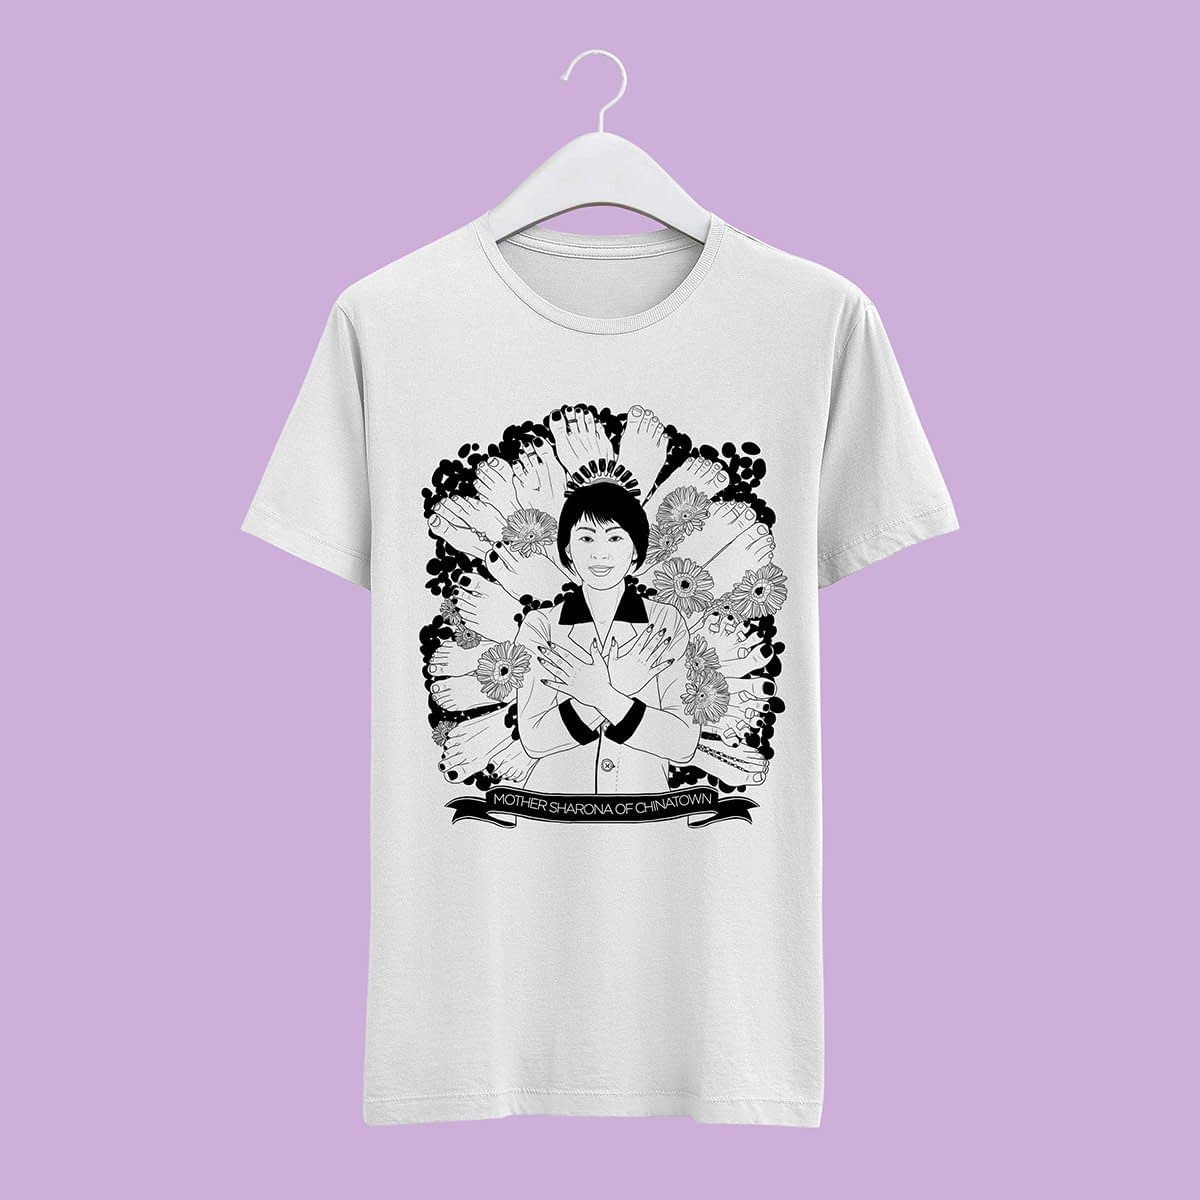 Mother Sharona of Chinatown | t-shirt   TUTTISANTI